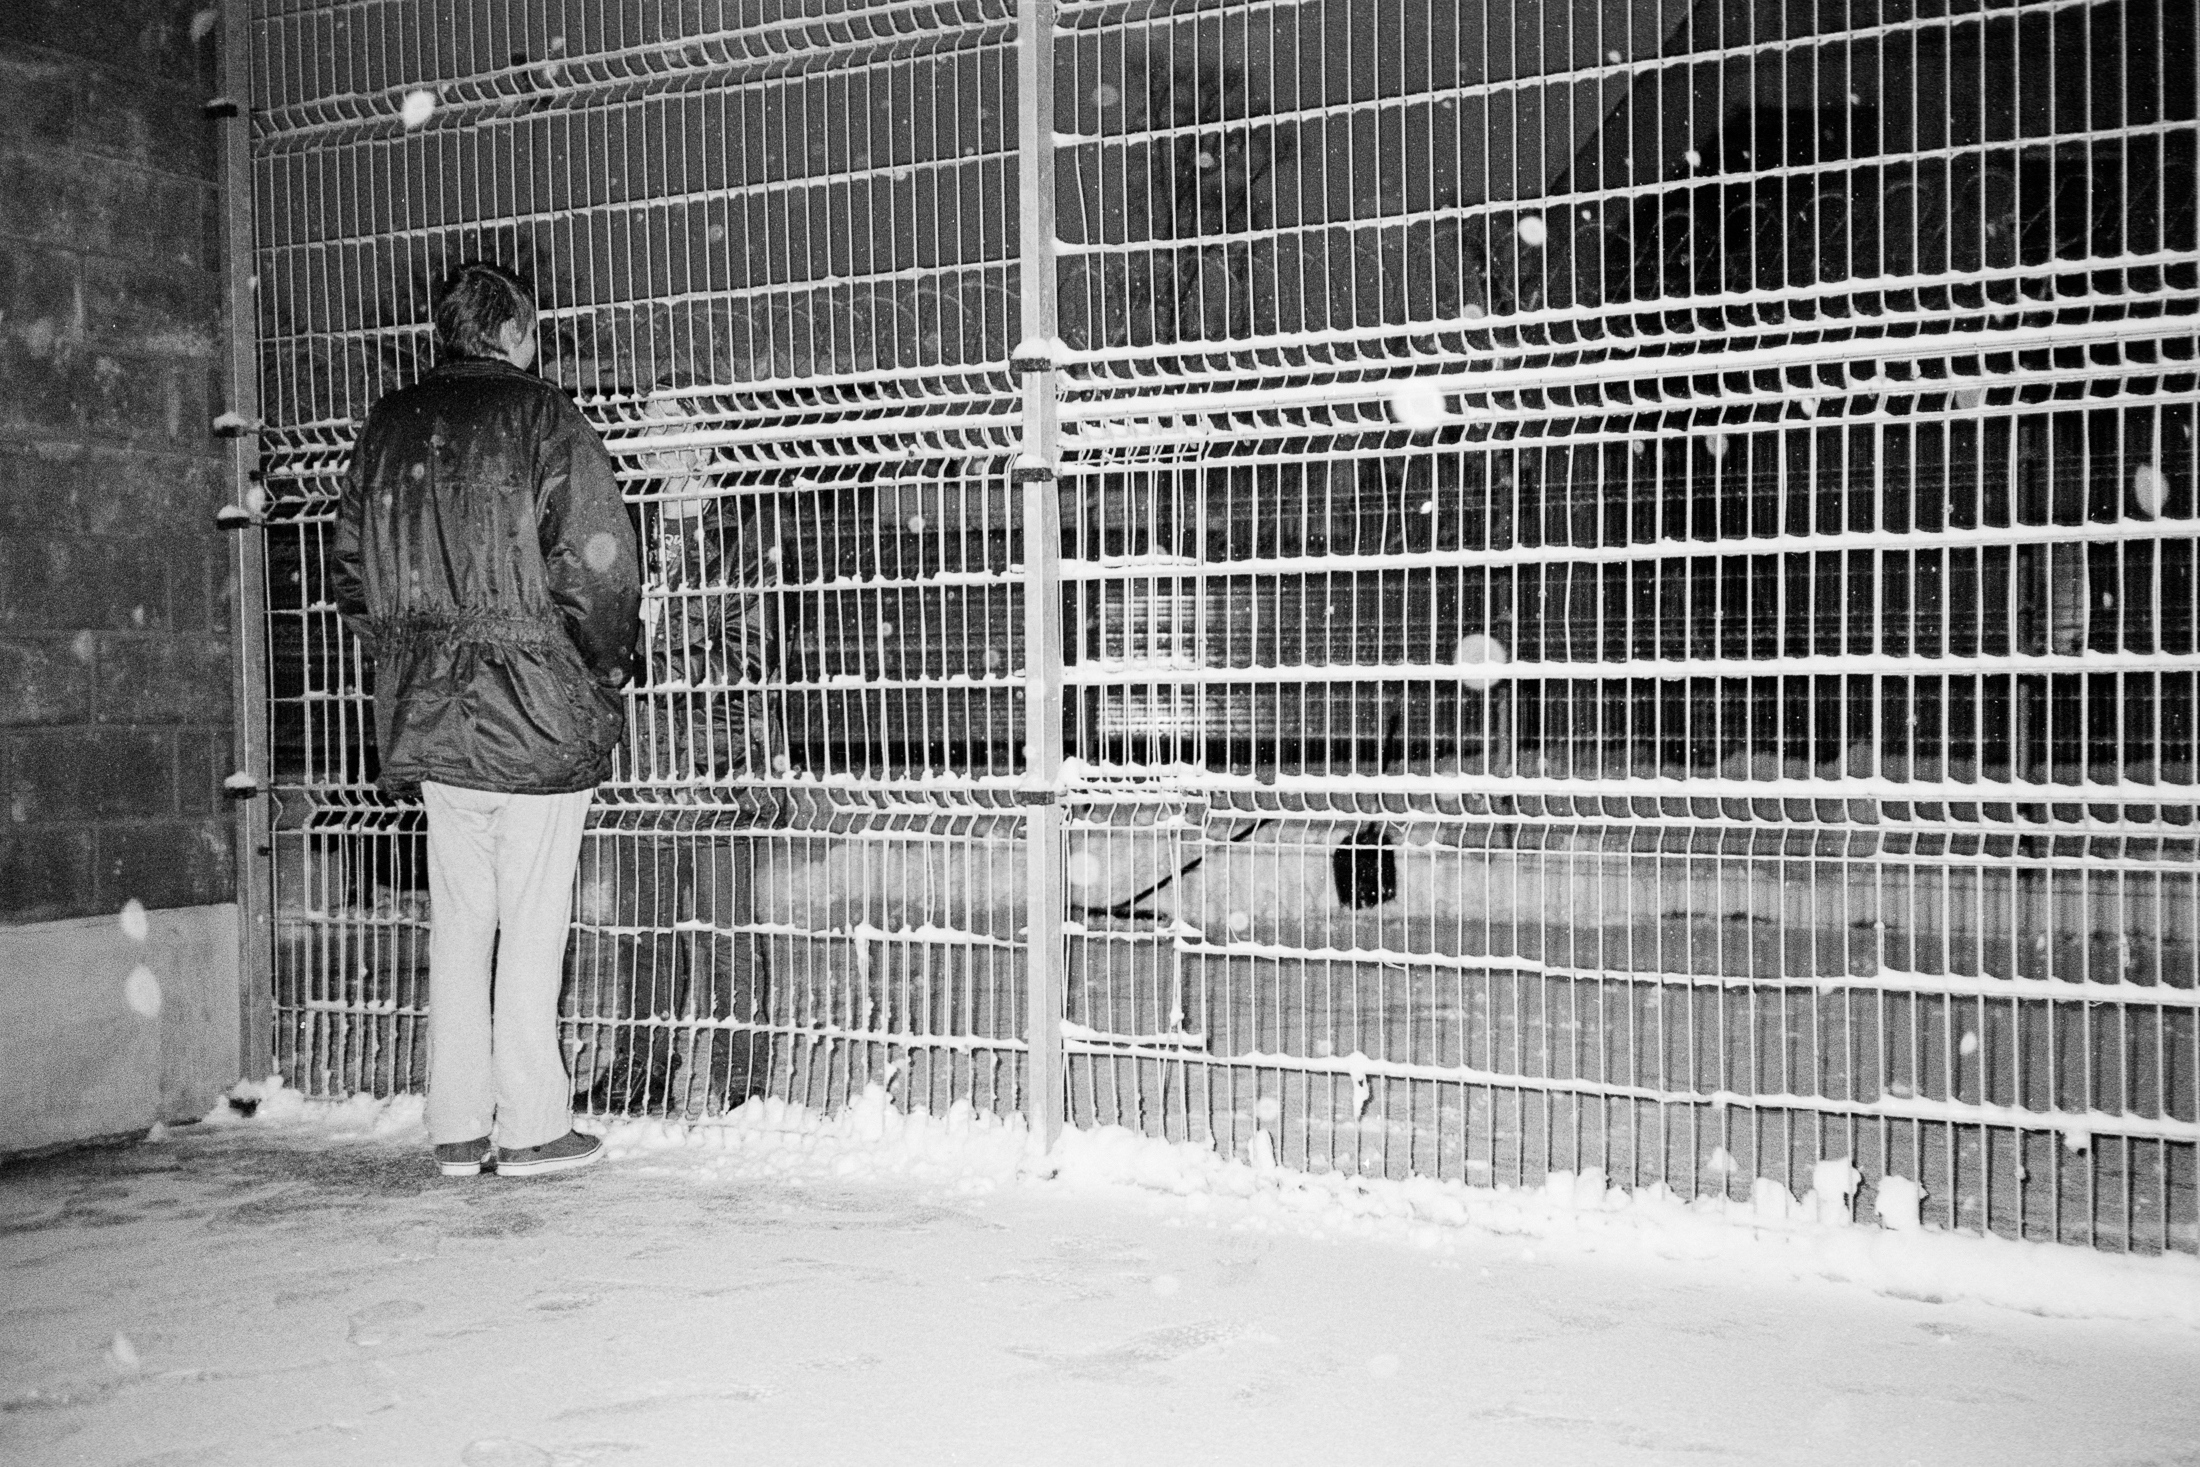 Here through a fence separating spaces of the prison, two inmates discuss. One of the detainees' tasks is to clear the snow from the aisles.